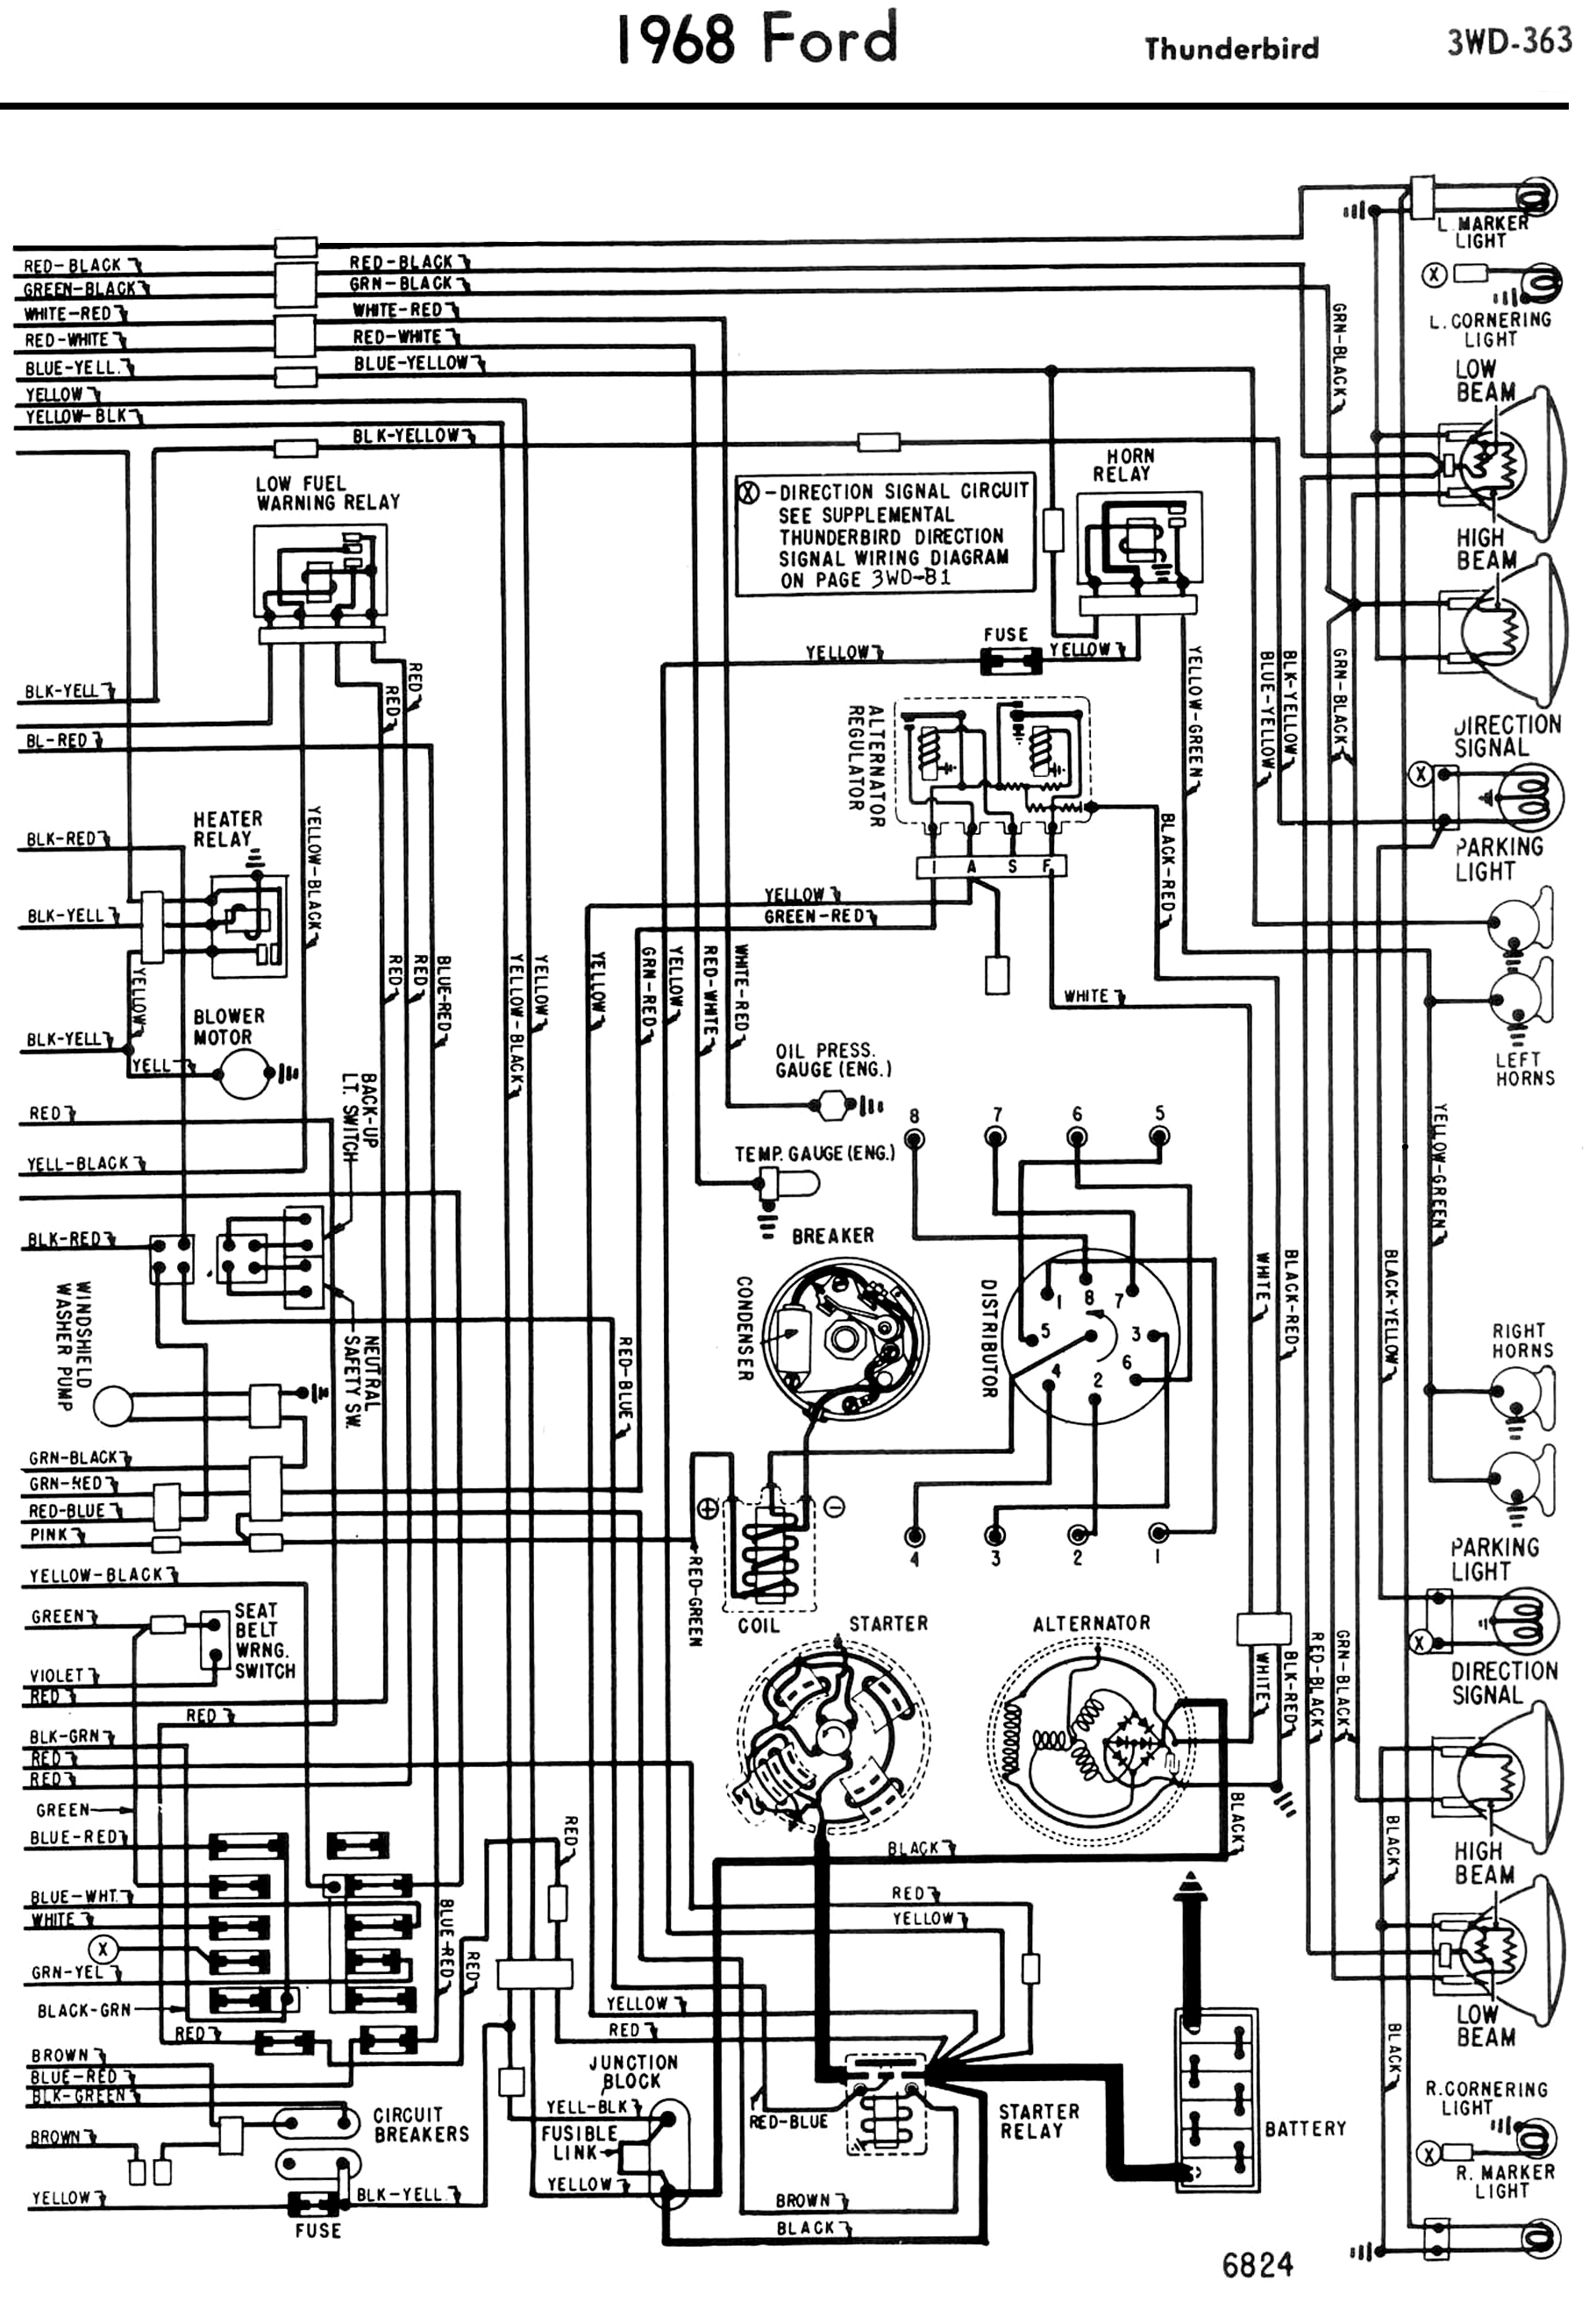 1965 thunderbird engine diagram data wiring diagrams \u2022